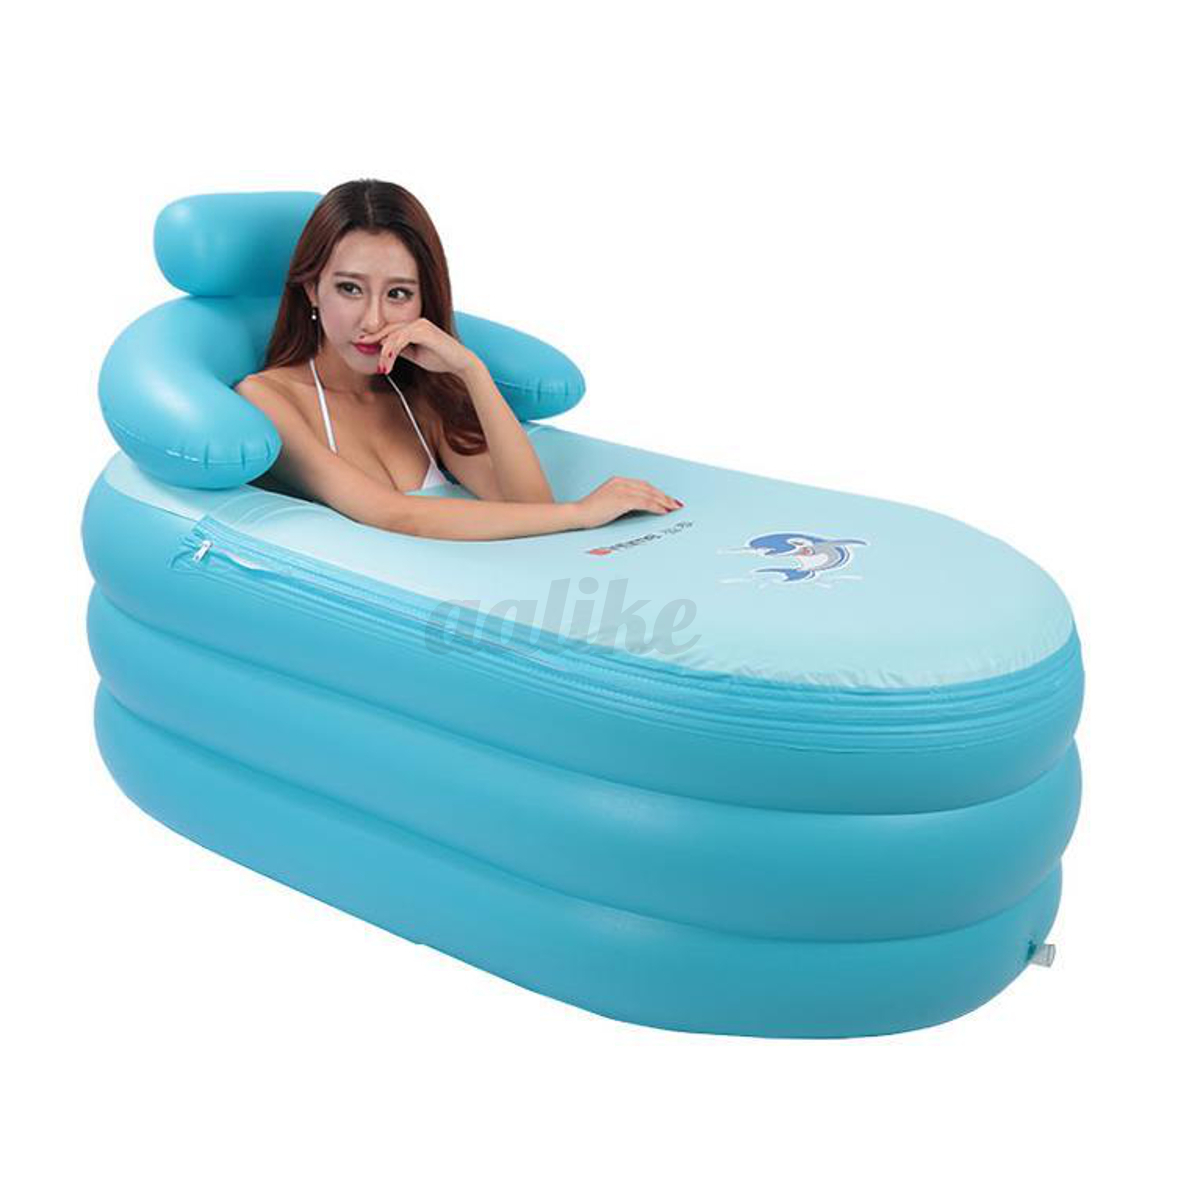 Inflatable Bathtubs For Adults - Image Bathtub Collections